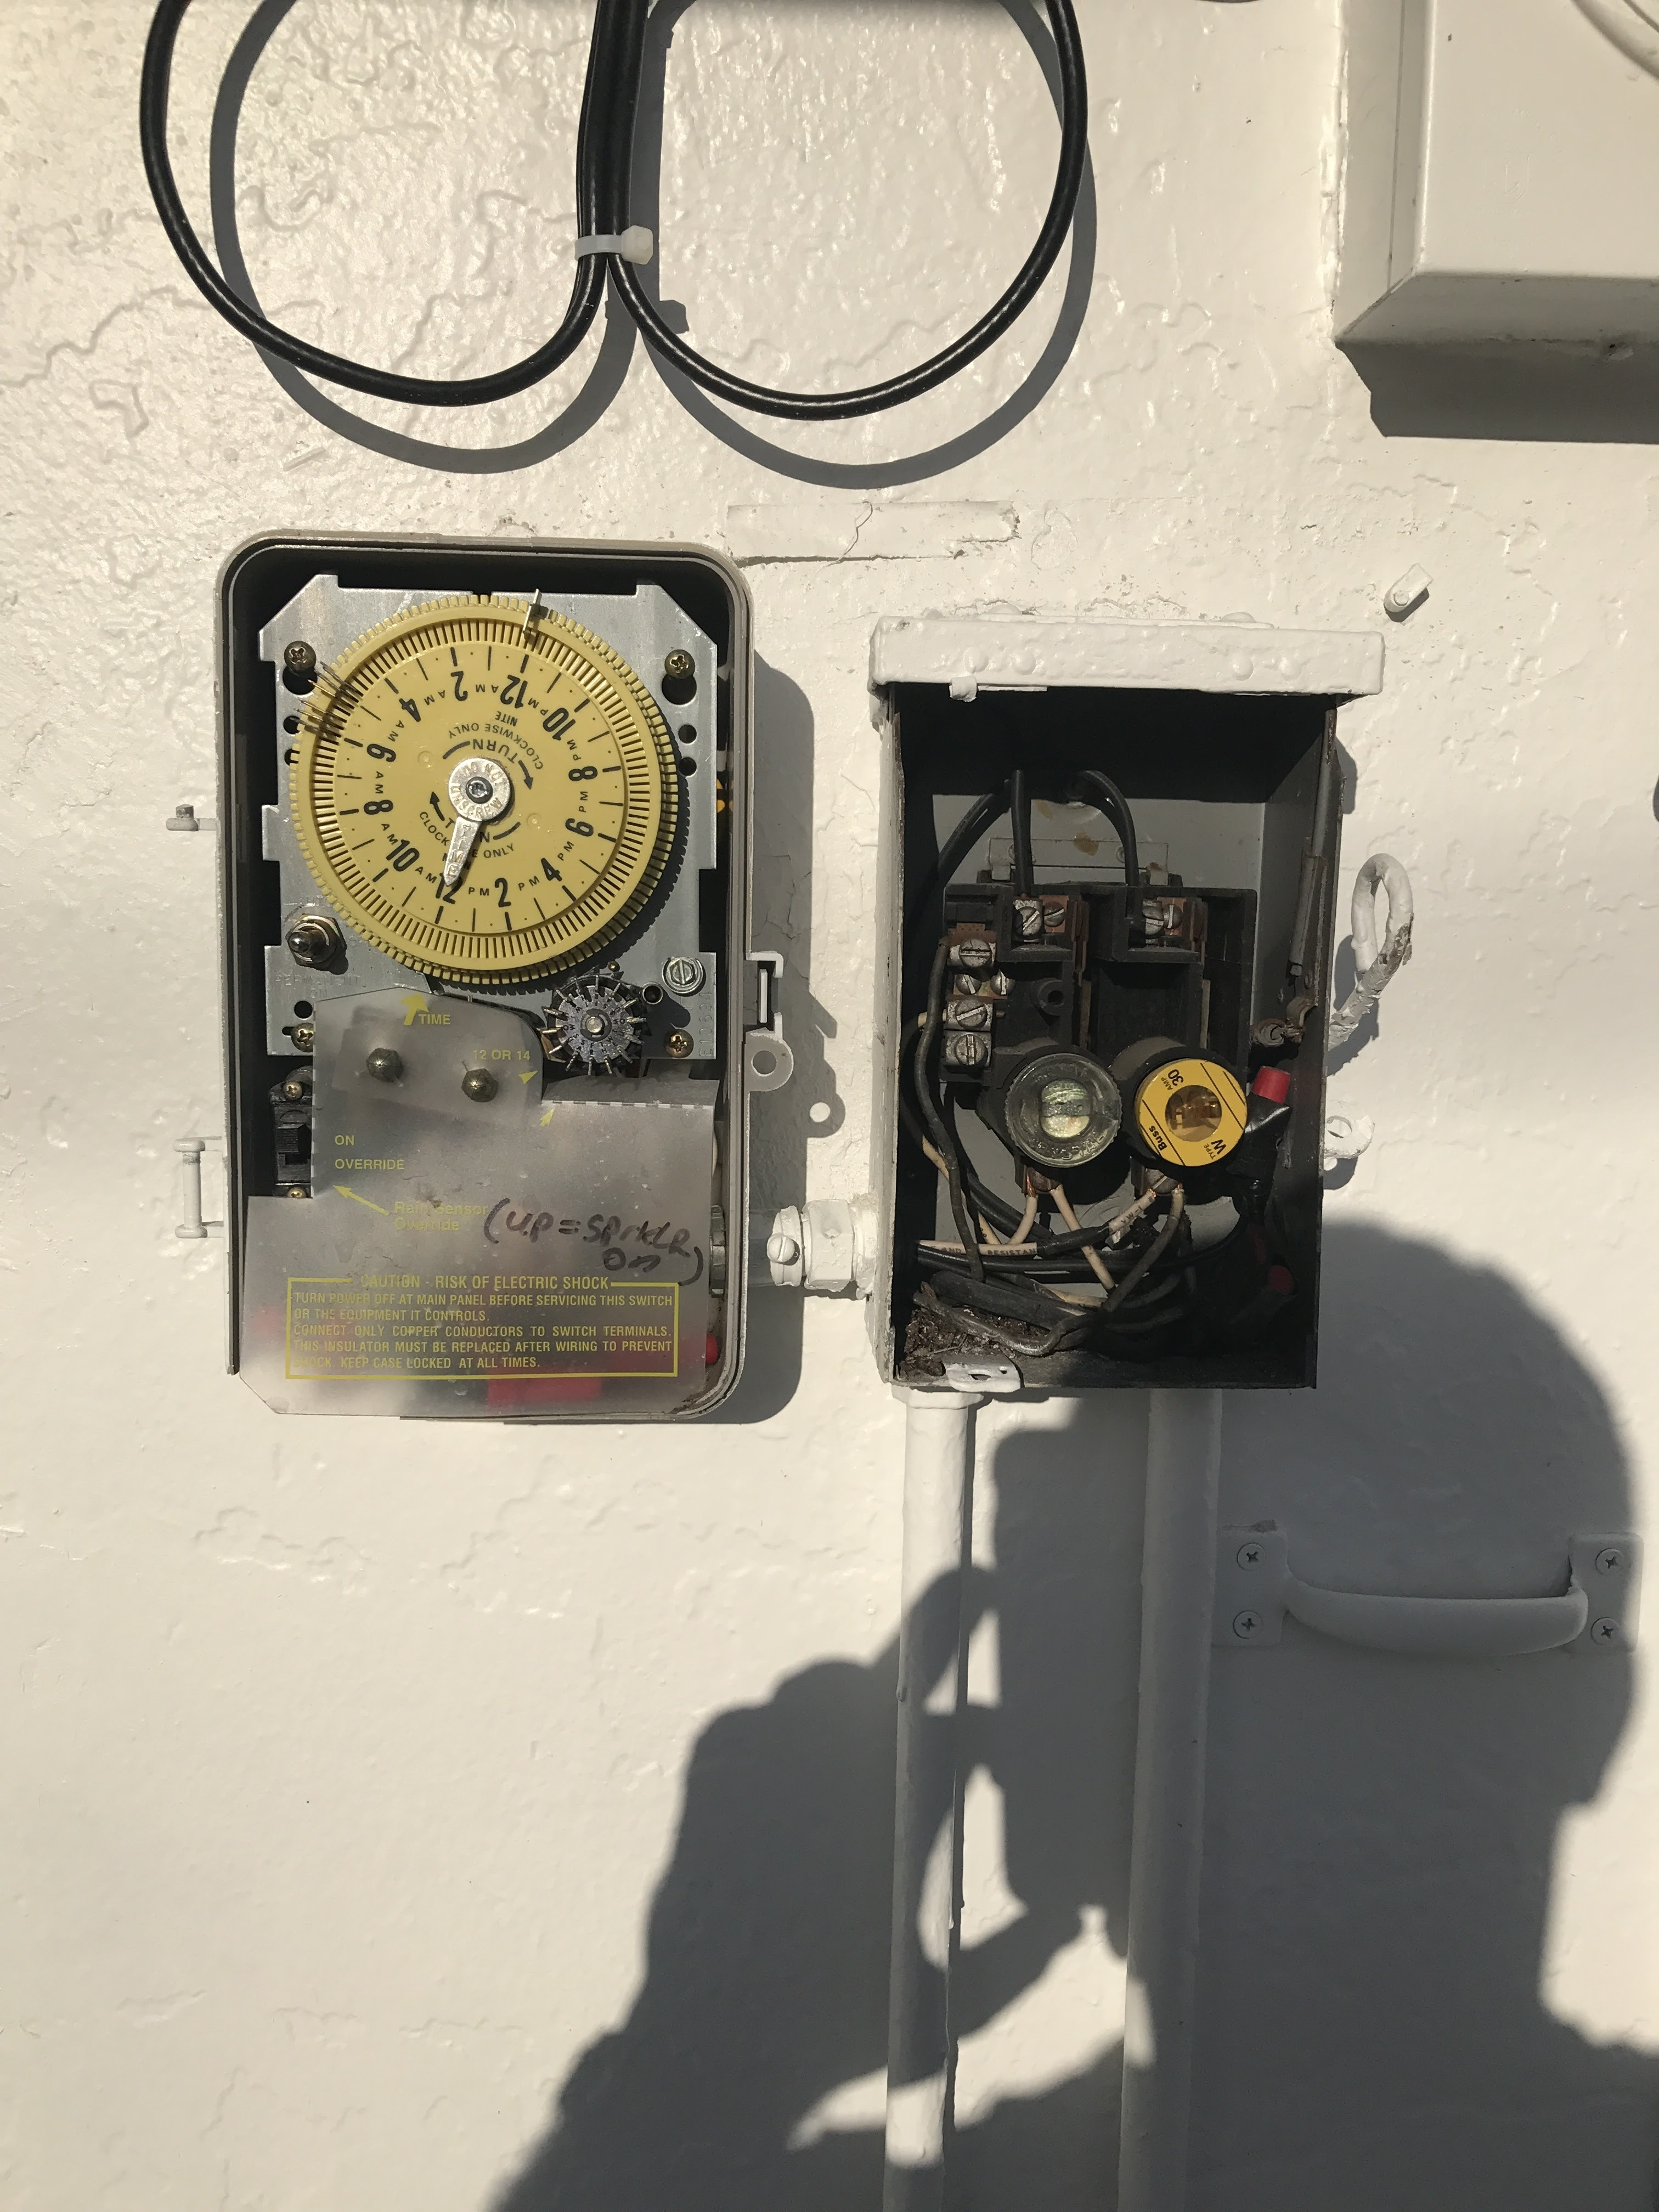 Intermatic Mechanical Timer Replace :) - Sprinklers ... on